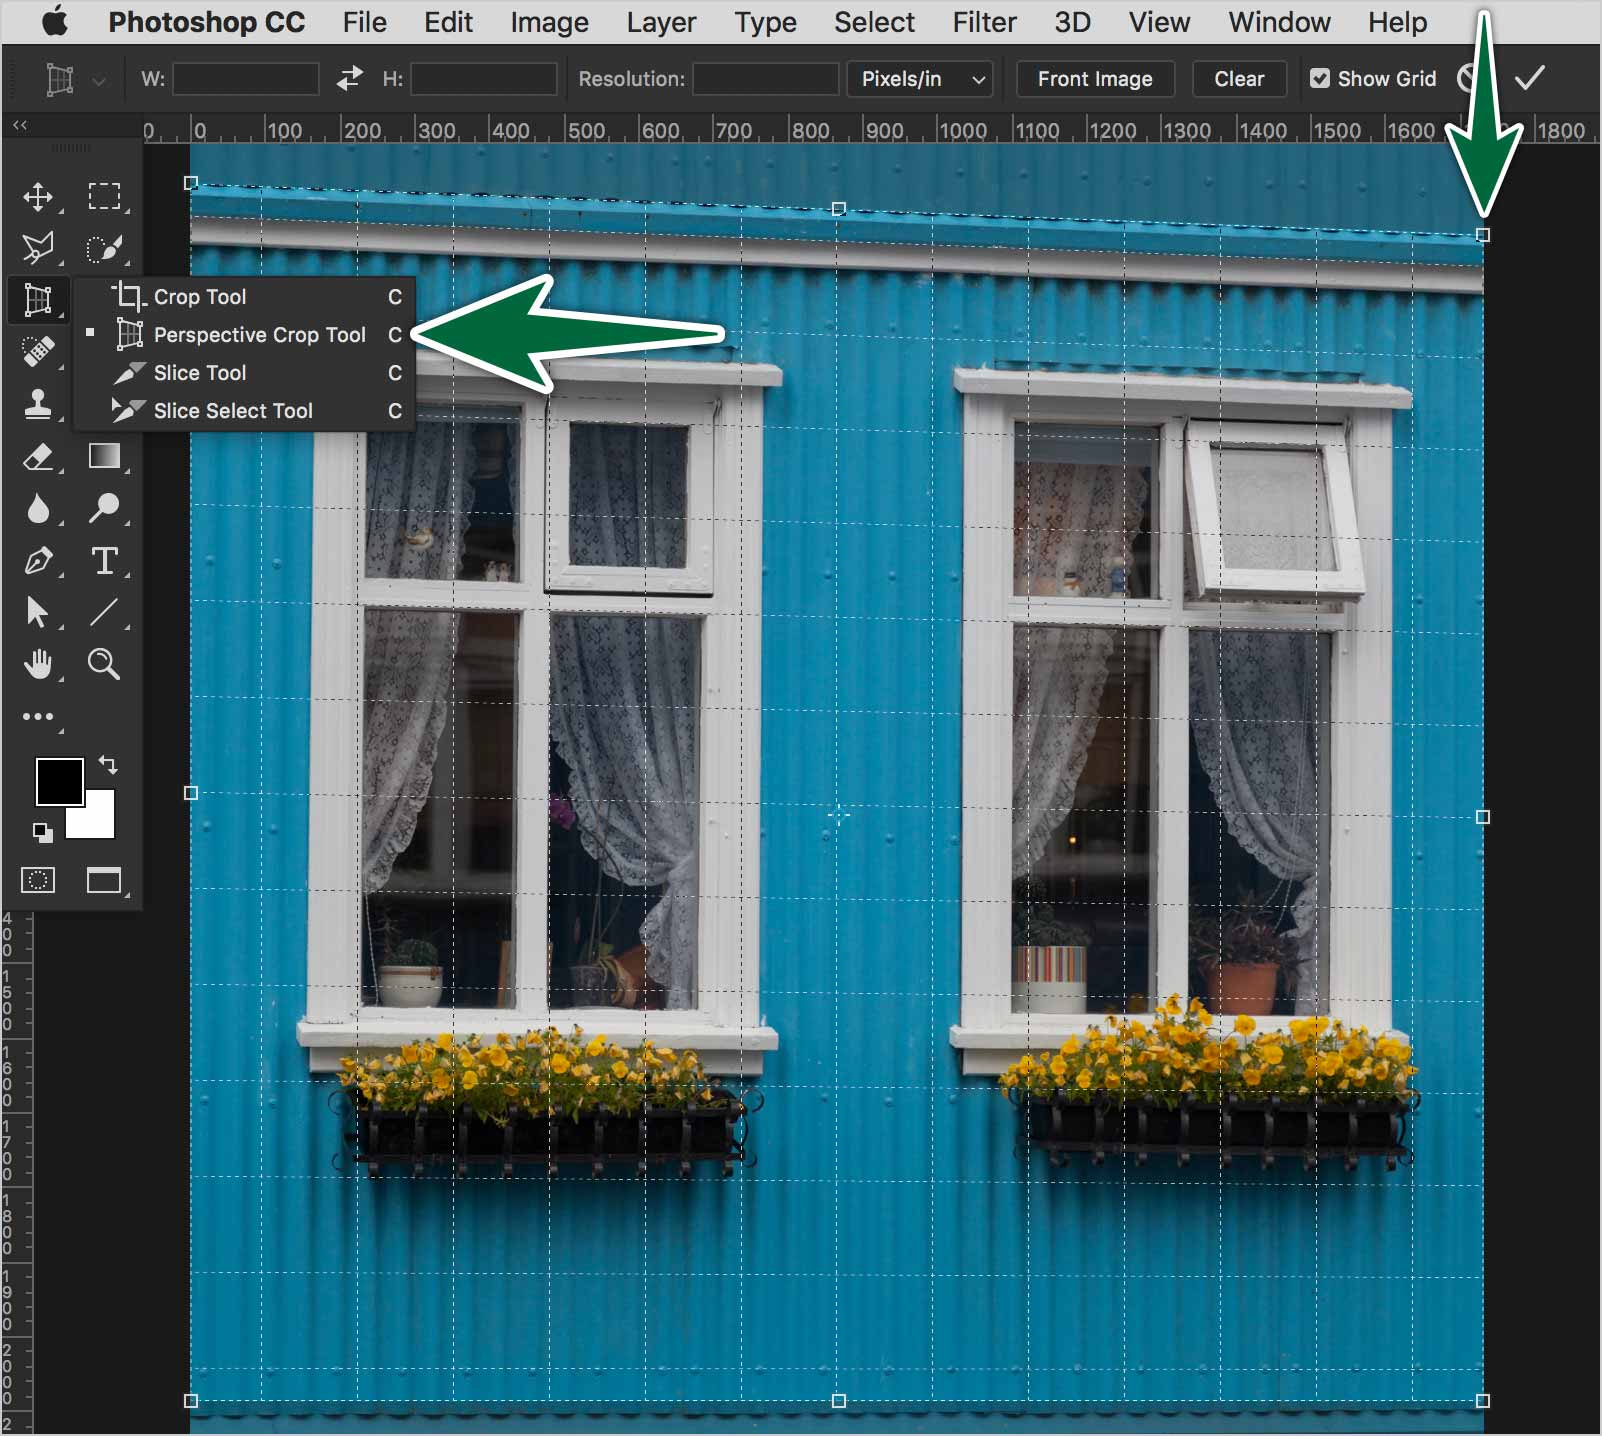 photoshop-croppping-perspective-crop